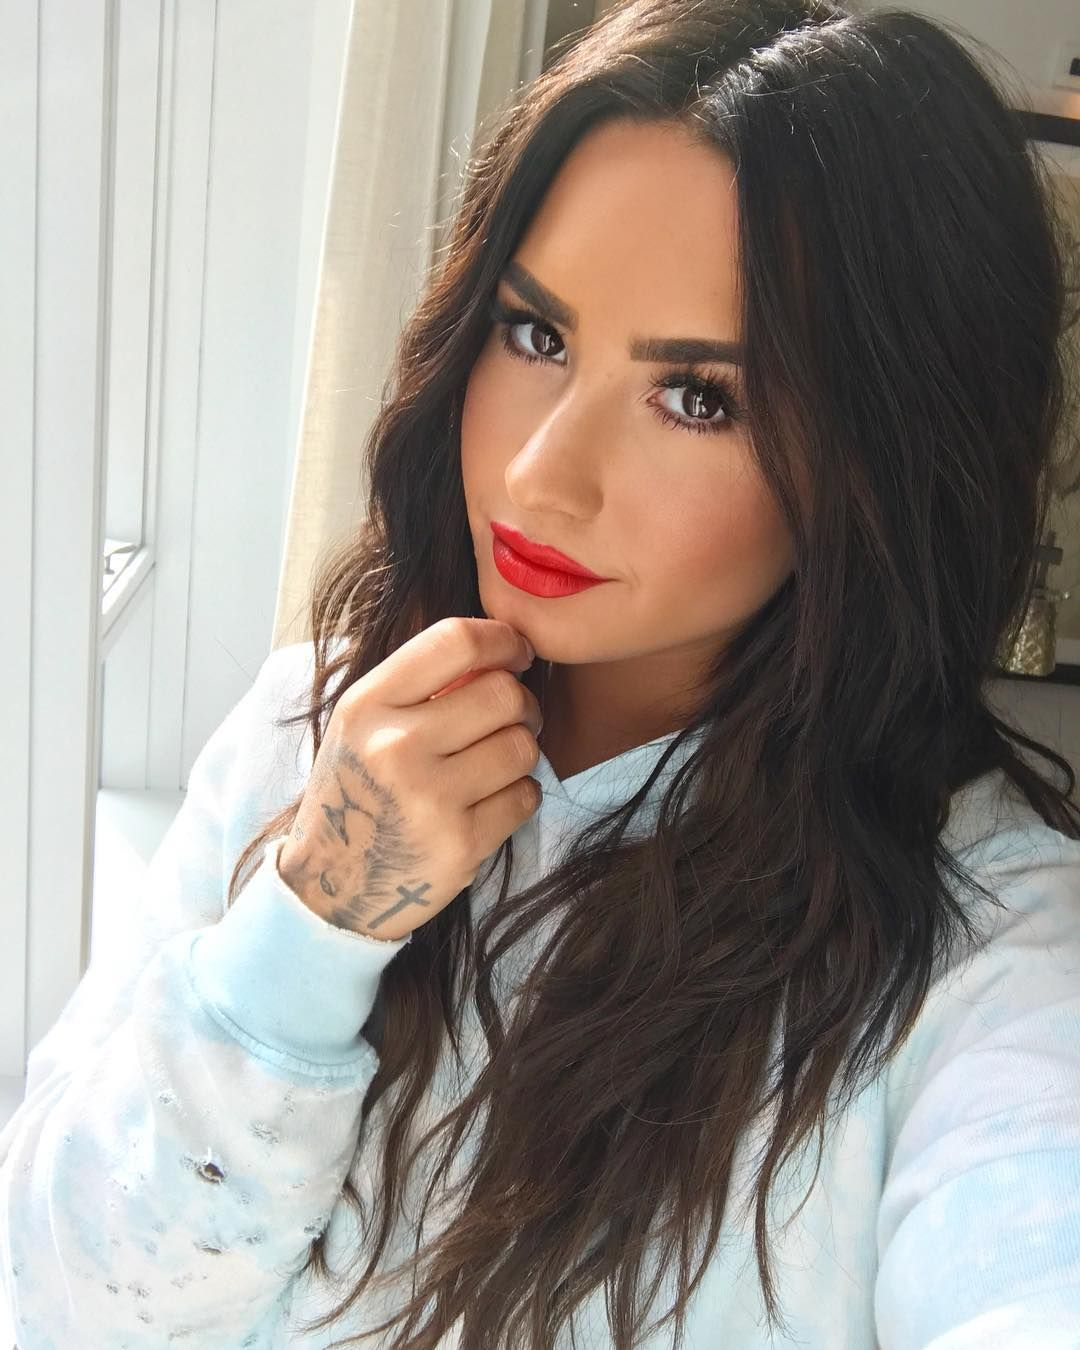 Pin by Naoom on Demi lovato  Pinterest  Instagram Makeup and